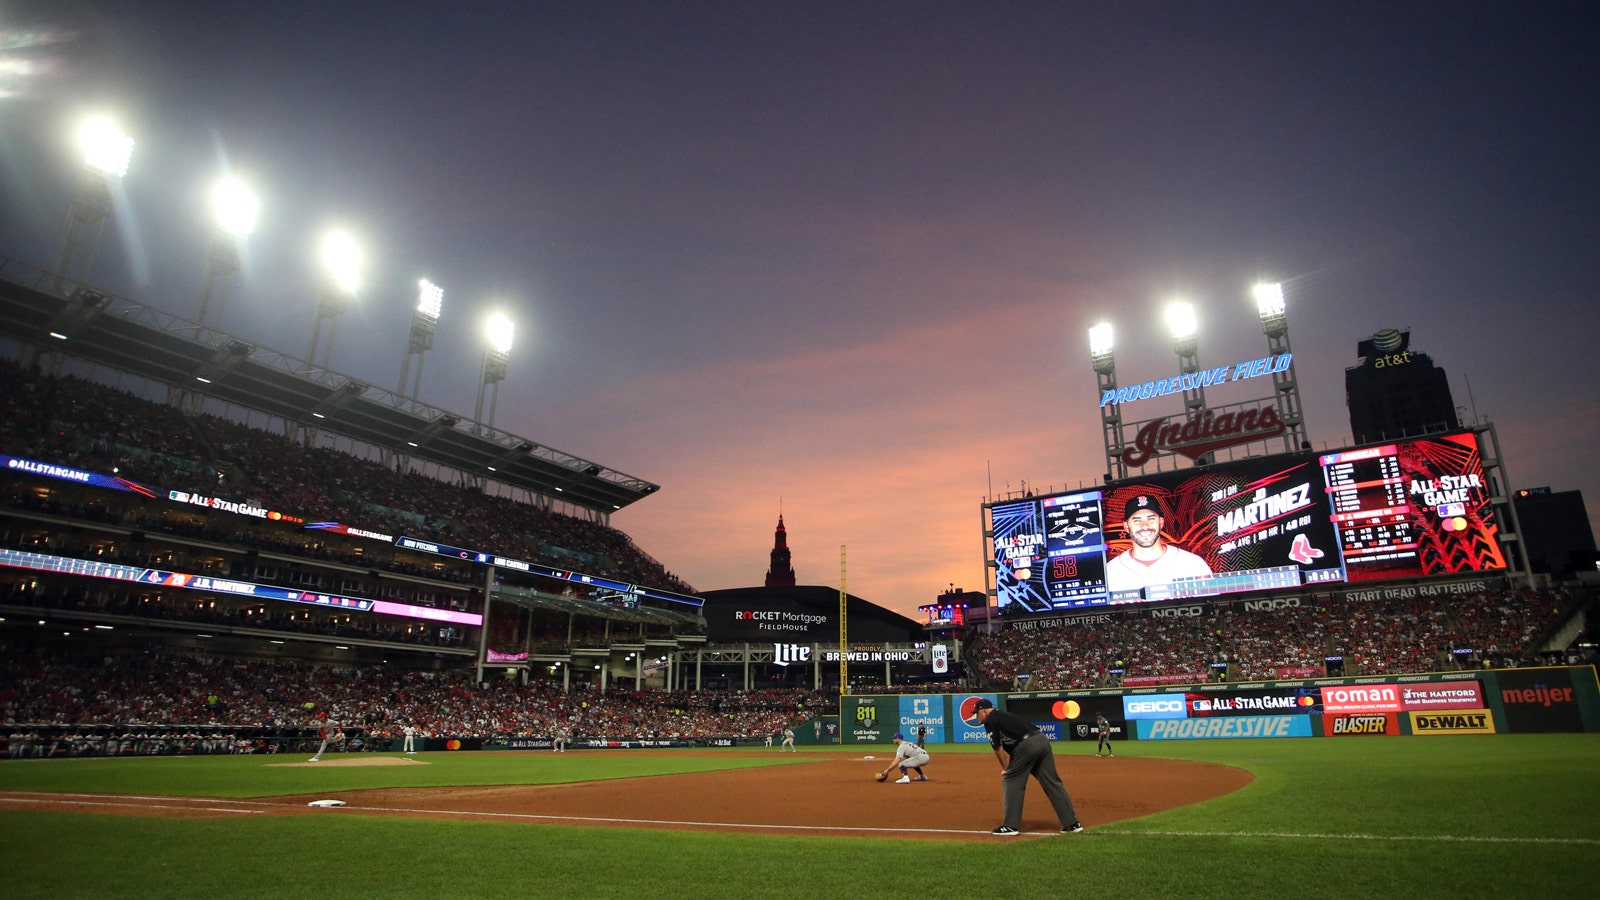 Cleveland Indians 2020 schedule: Opening Day March 26 vs